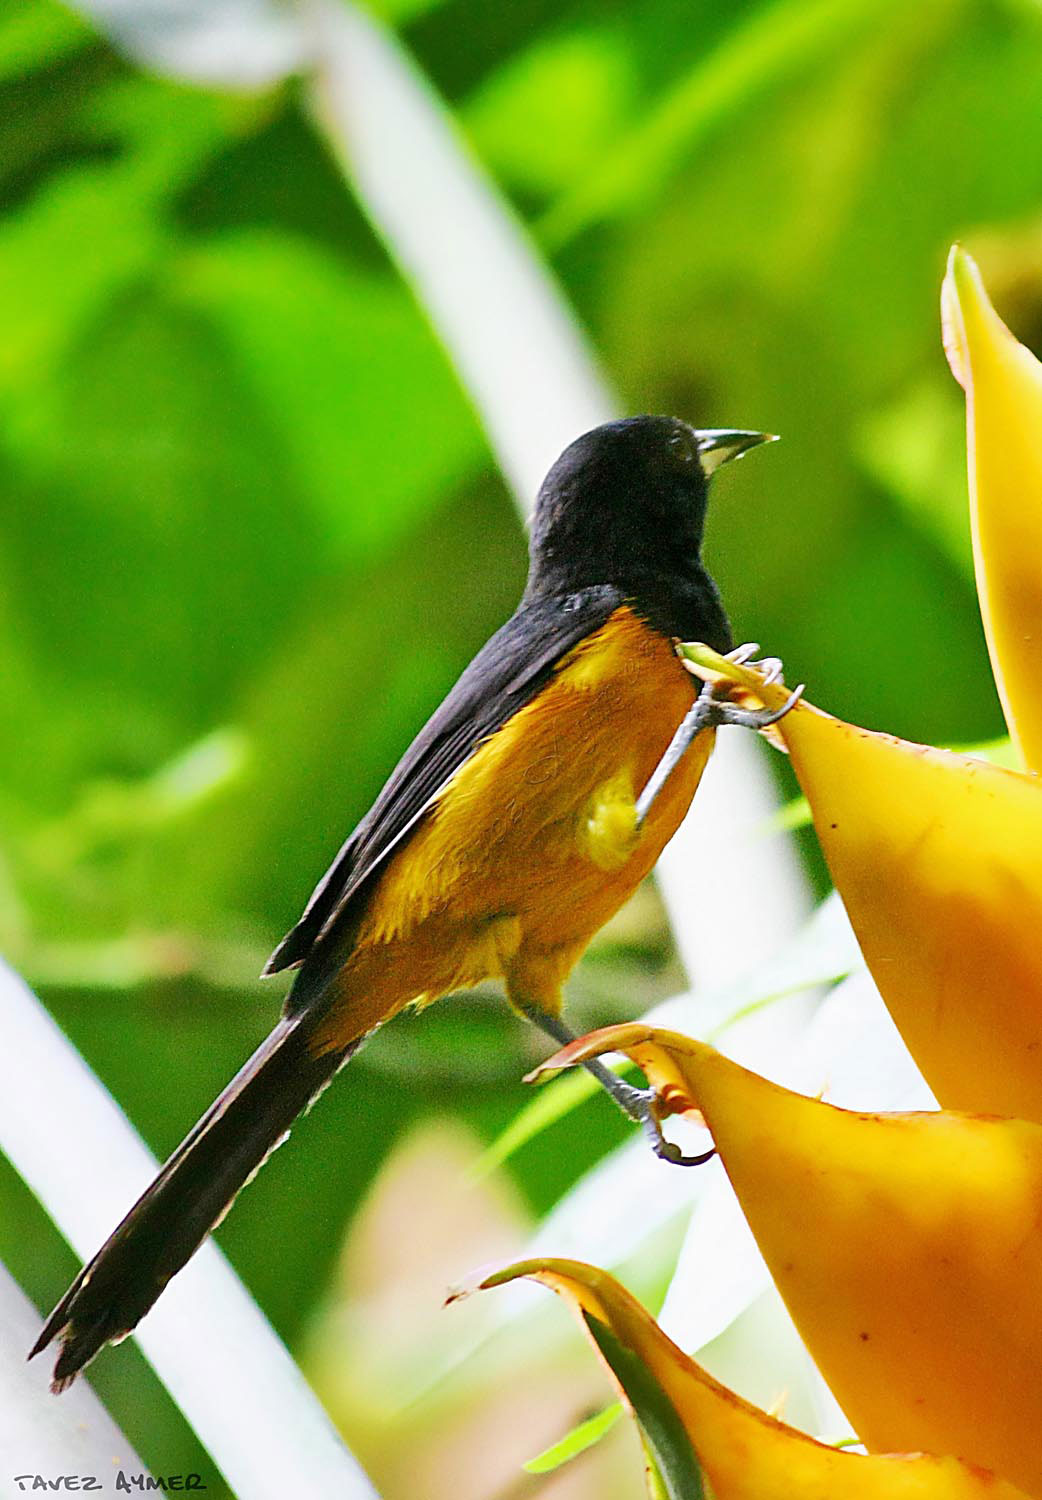 Though the Montserrat oriole's habitat was affected by the Soufrière Hills eruptions, its numbers are rebounding. Photo courtesy Montserrat Tourism Division